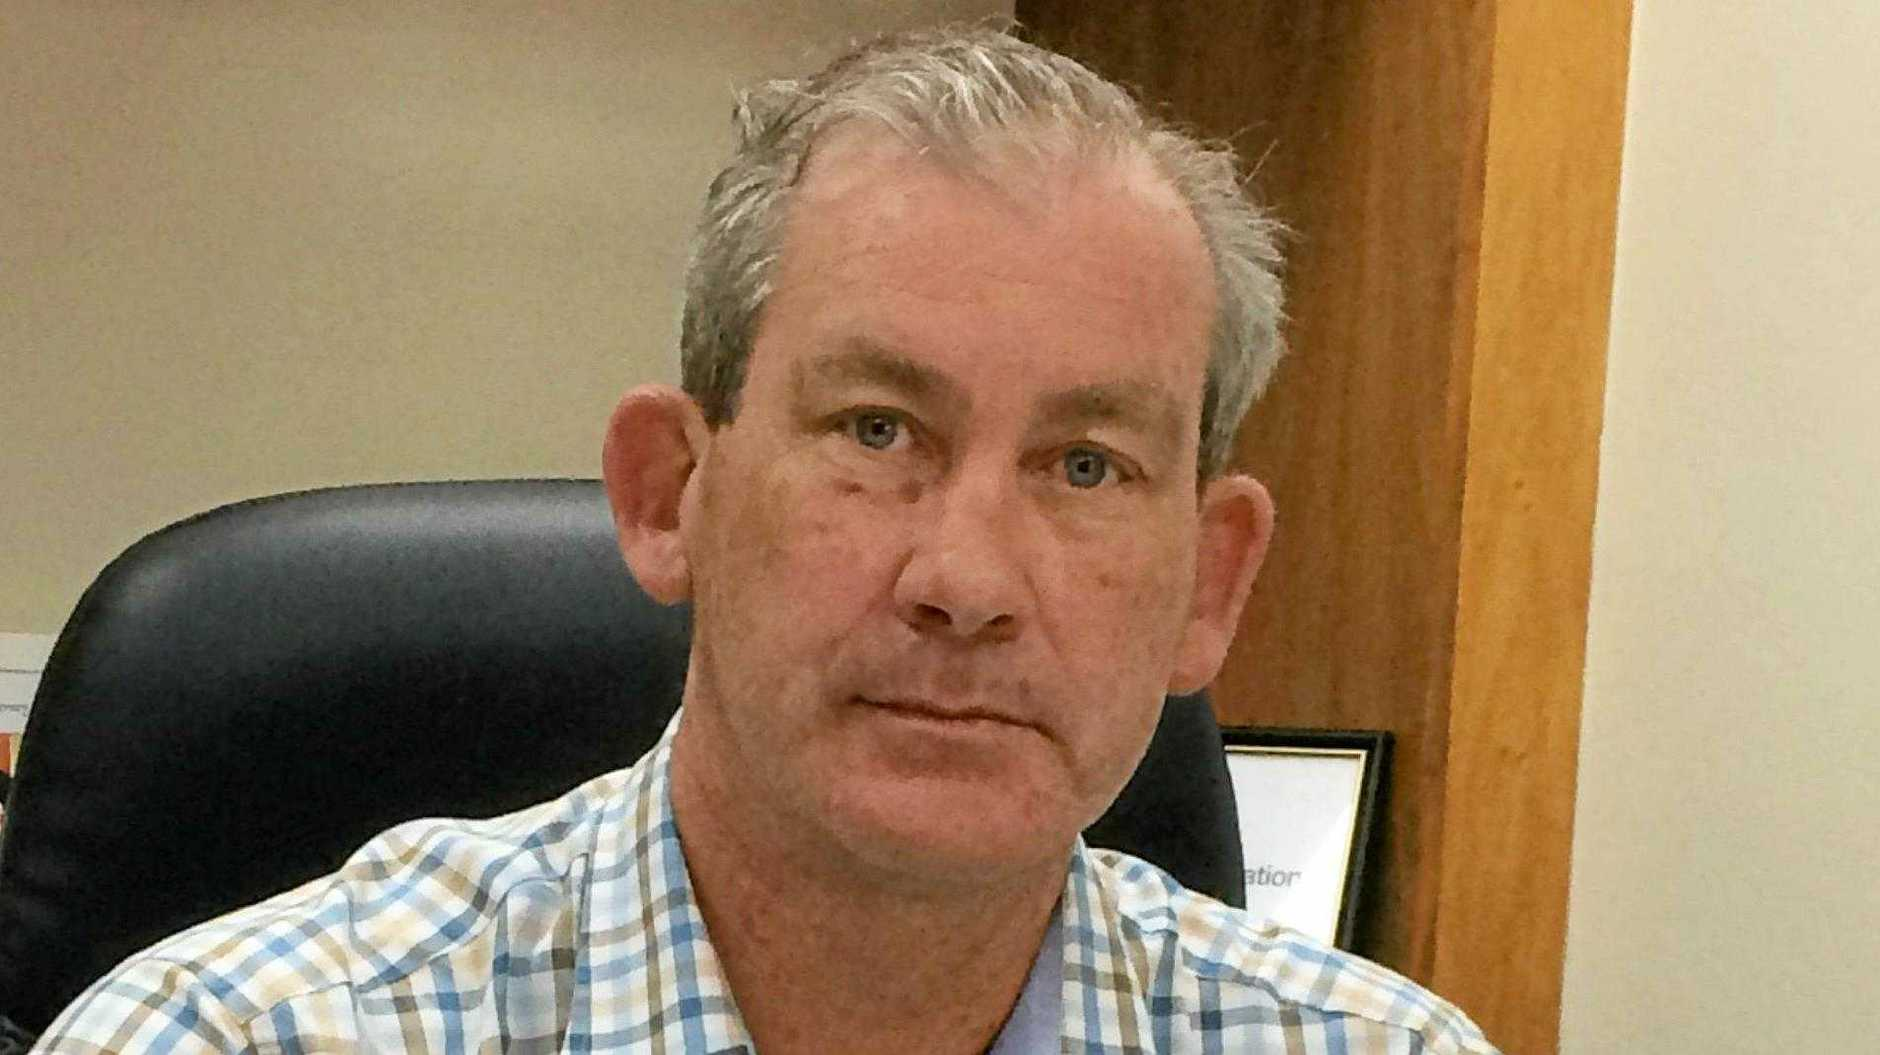 Gympie Regional Council mayor Mick Curran said they're doing their best to help with the clean up.